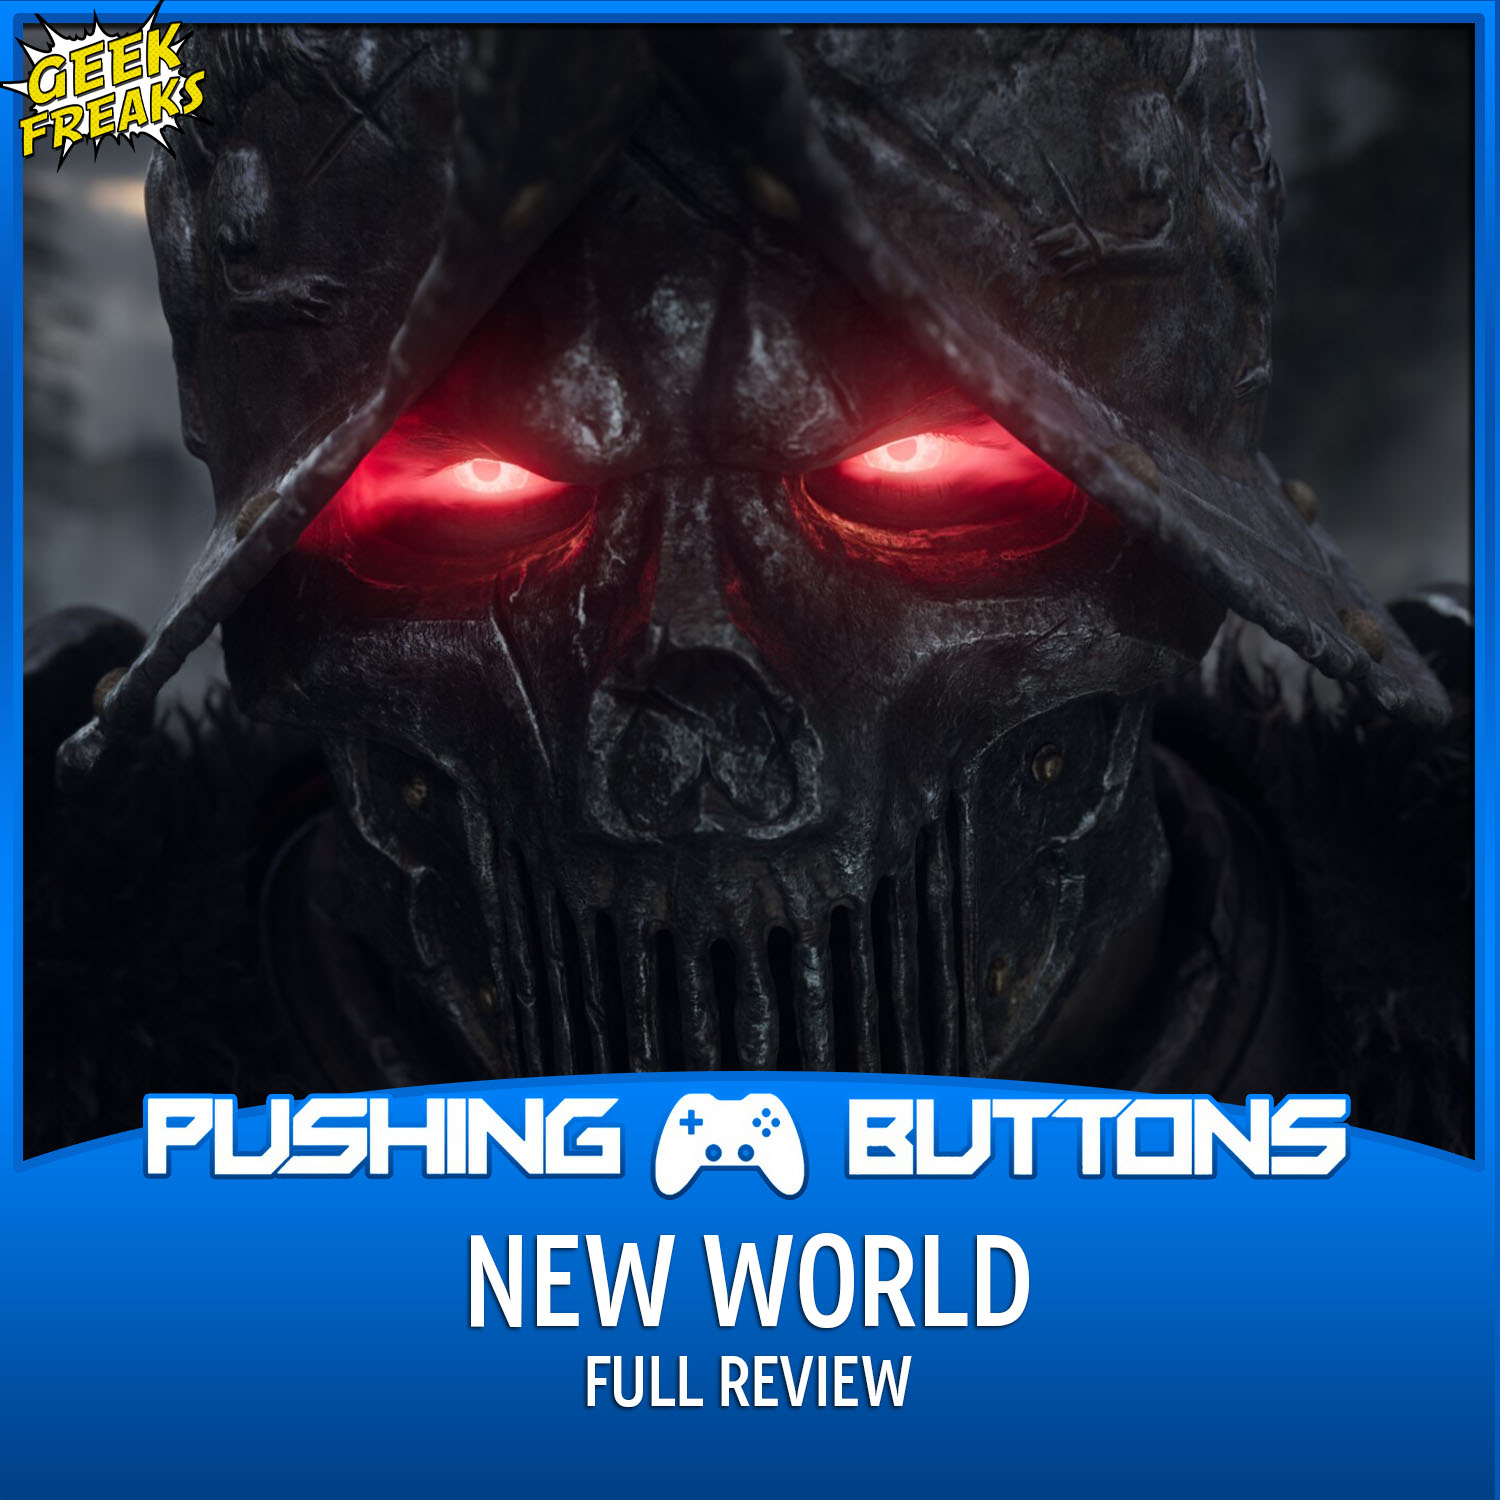 'New World' Full Review - Pushing Buttons show art